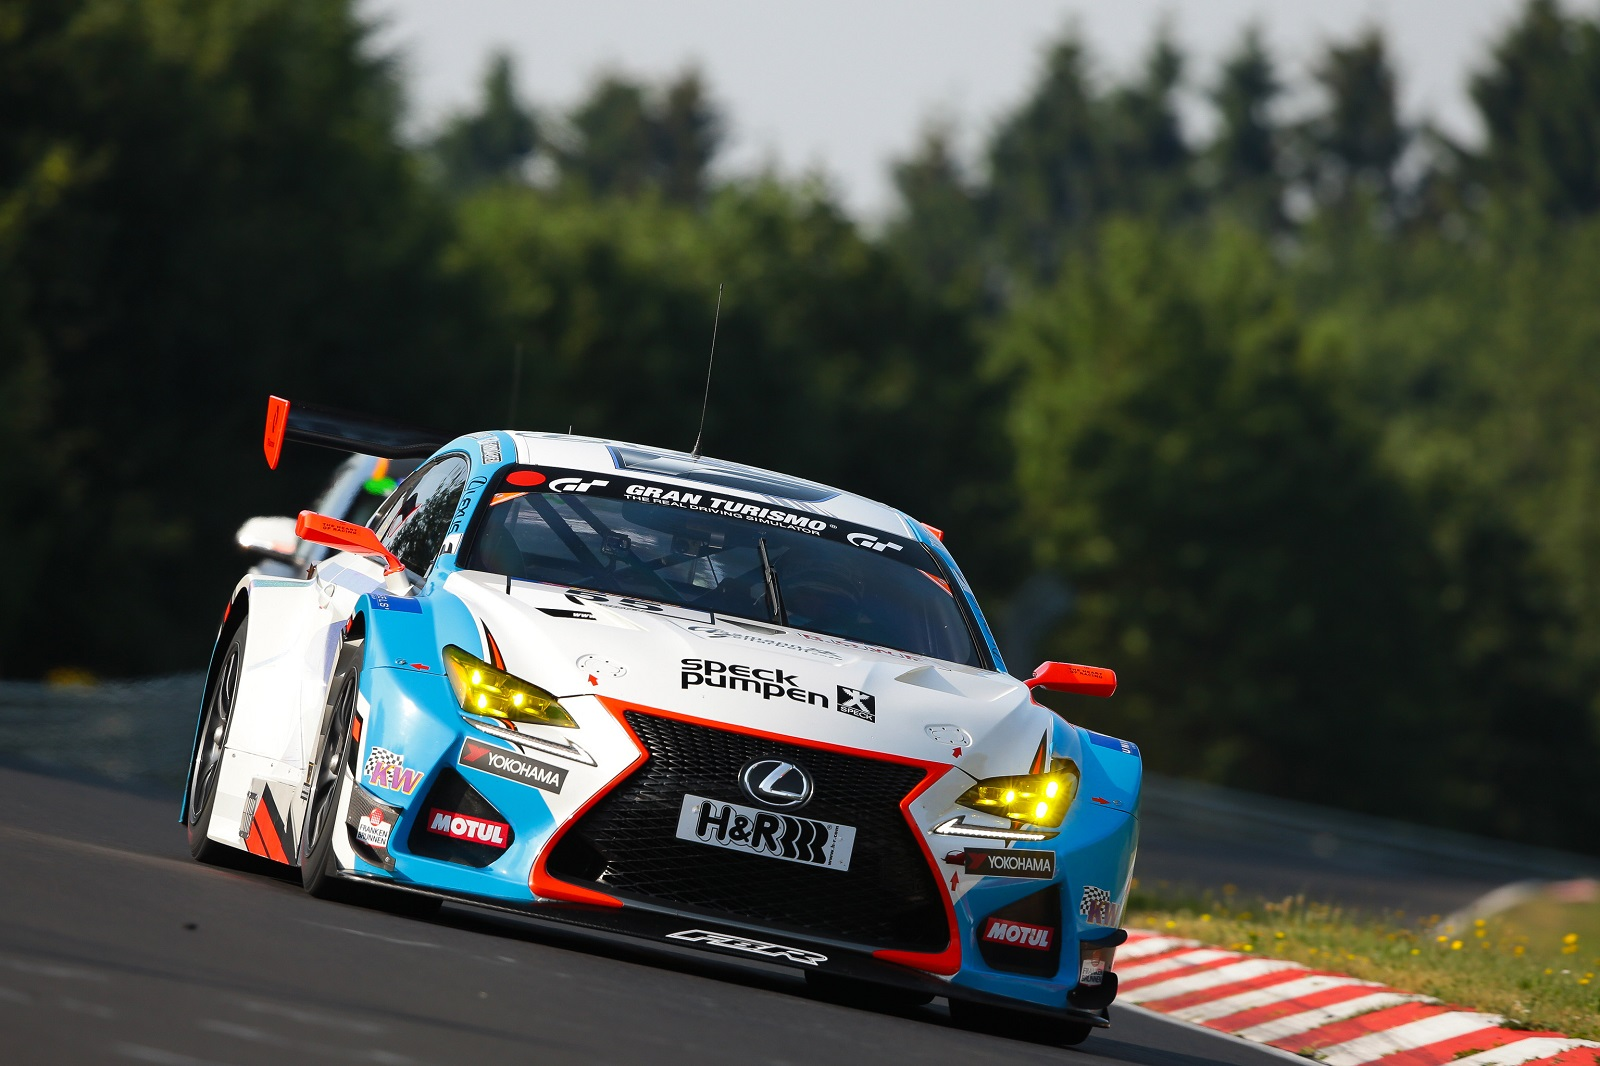 Lexus RC F GT3 snatches class victory on VLN Series debut - ForceGT.com